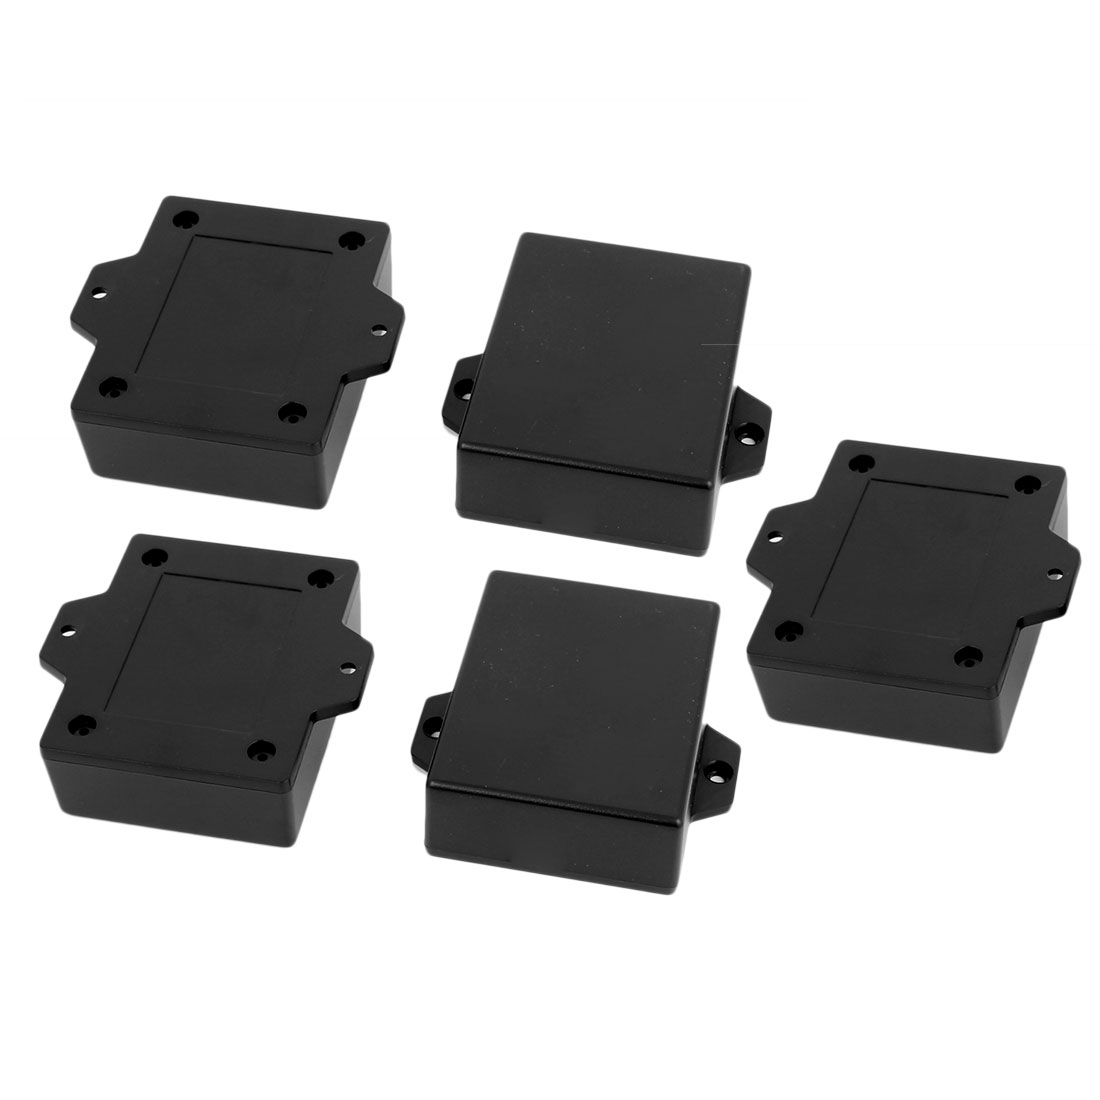 63mmx50mmx22mm Plastic Enclosure Electric Project Case Junction Box Black 5pcs